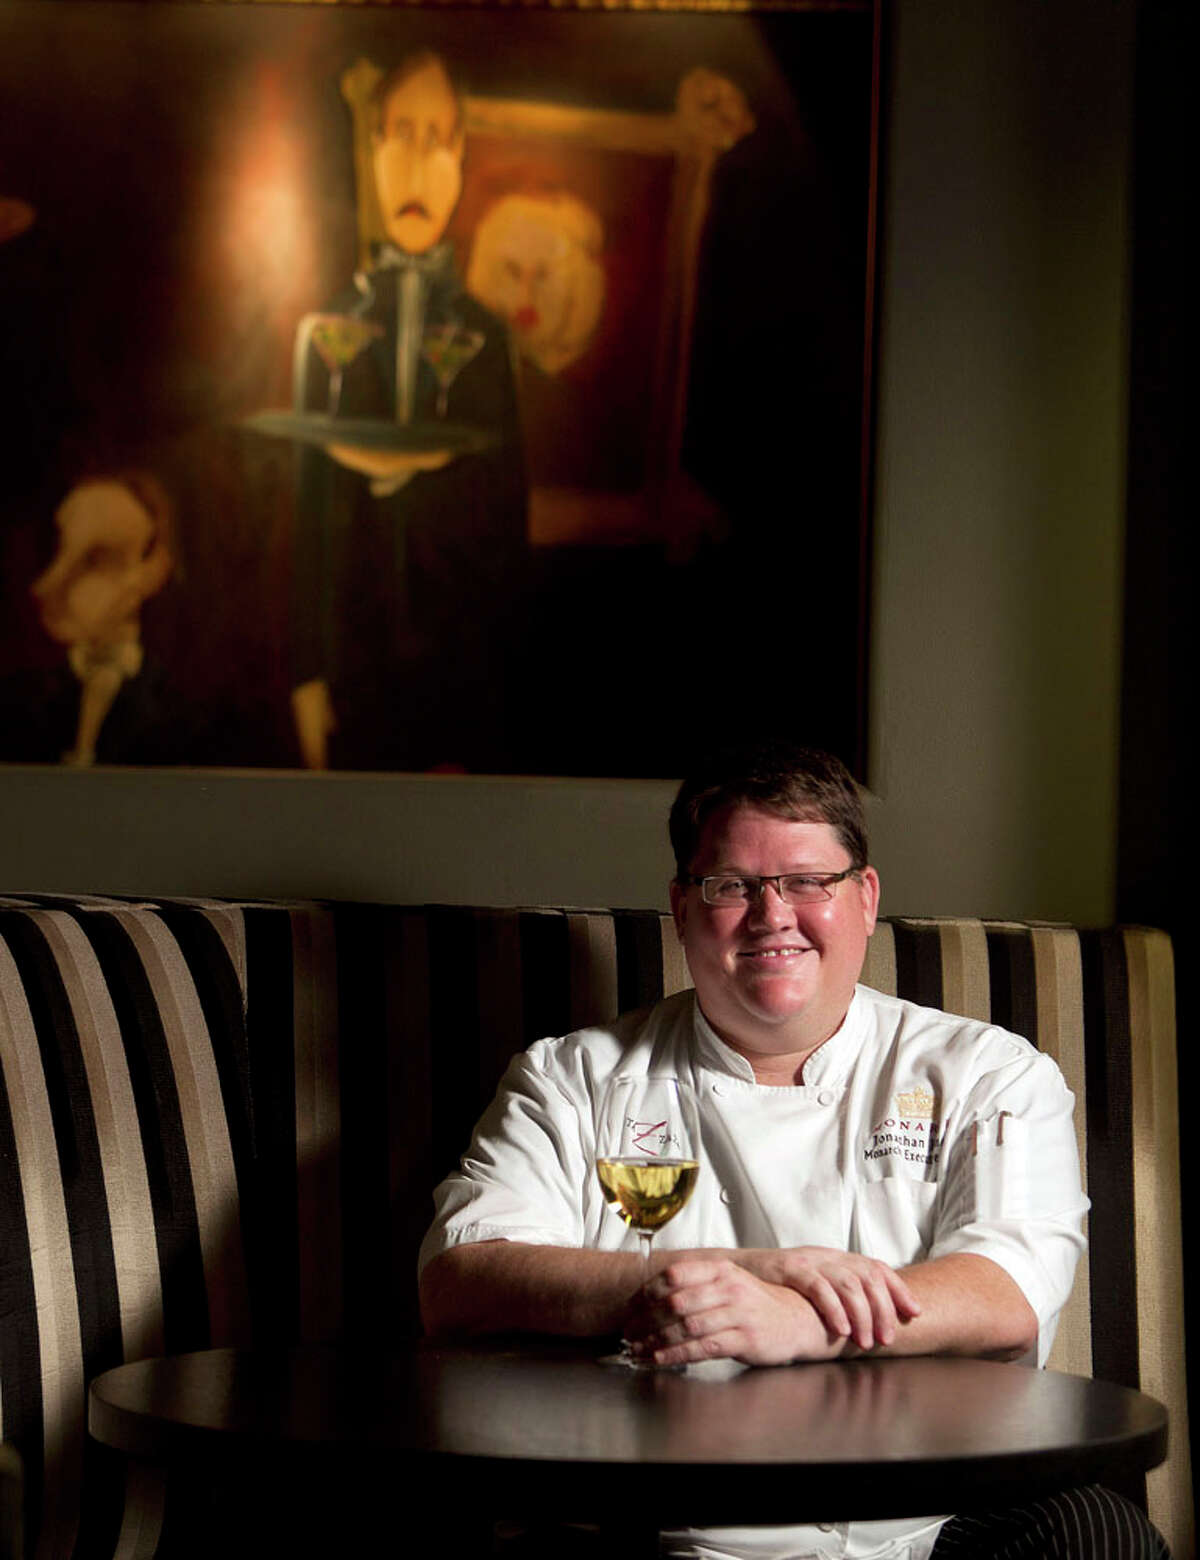 Chef Jonathan Jones, formerly of Monarch at Hotel ZaZa, is now executive chef for Cane Rosso, overseeing the brand's South Texas locations.